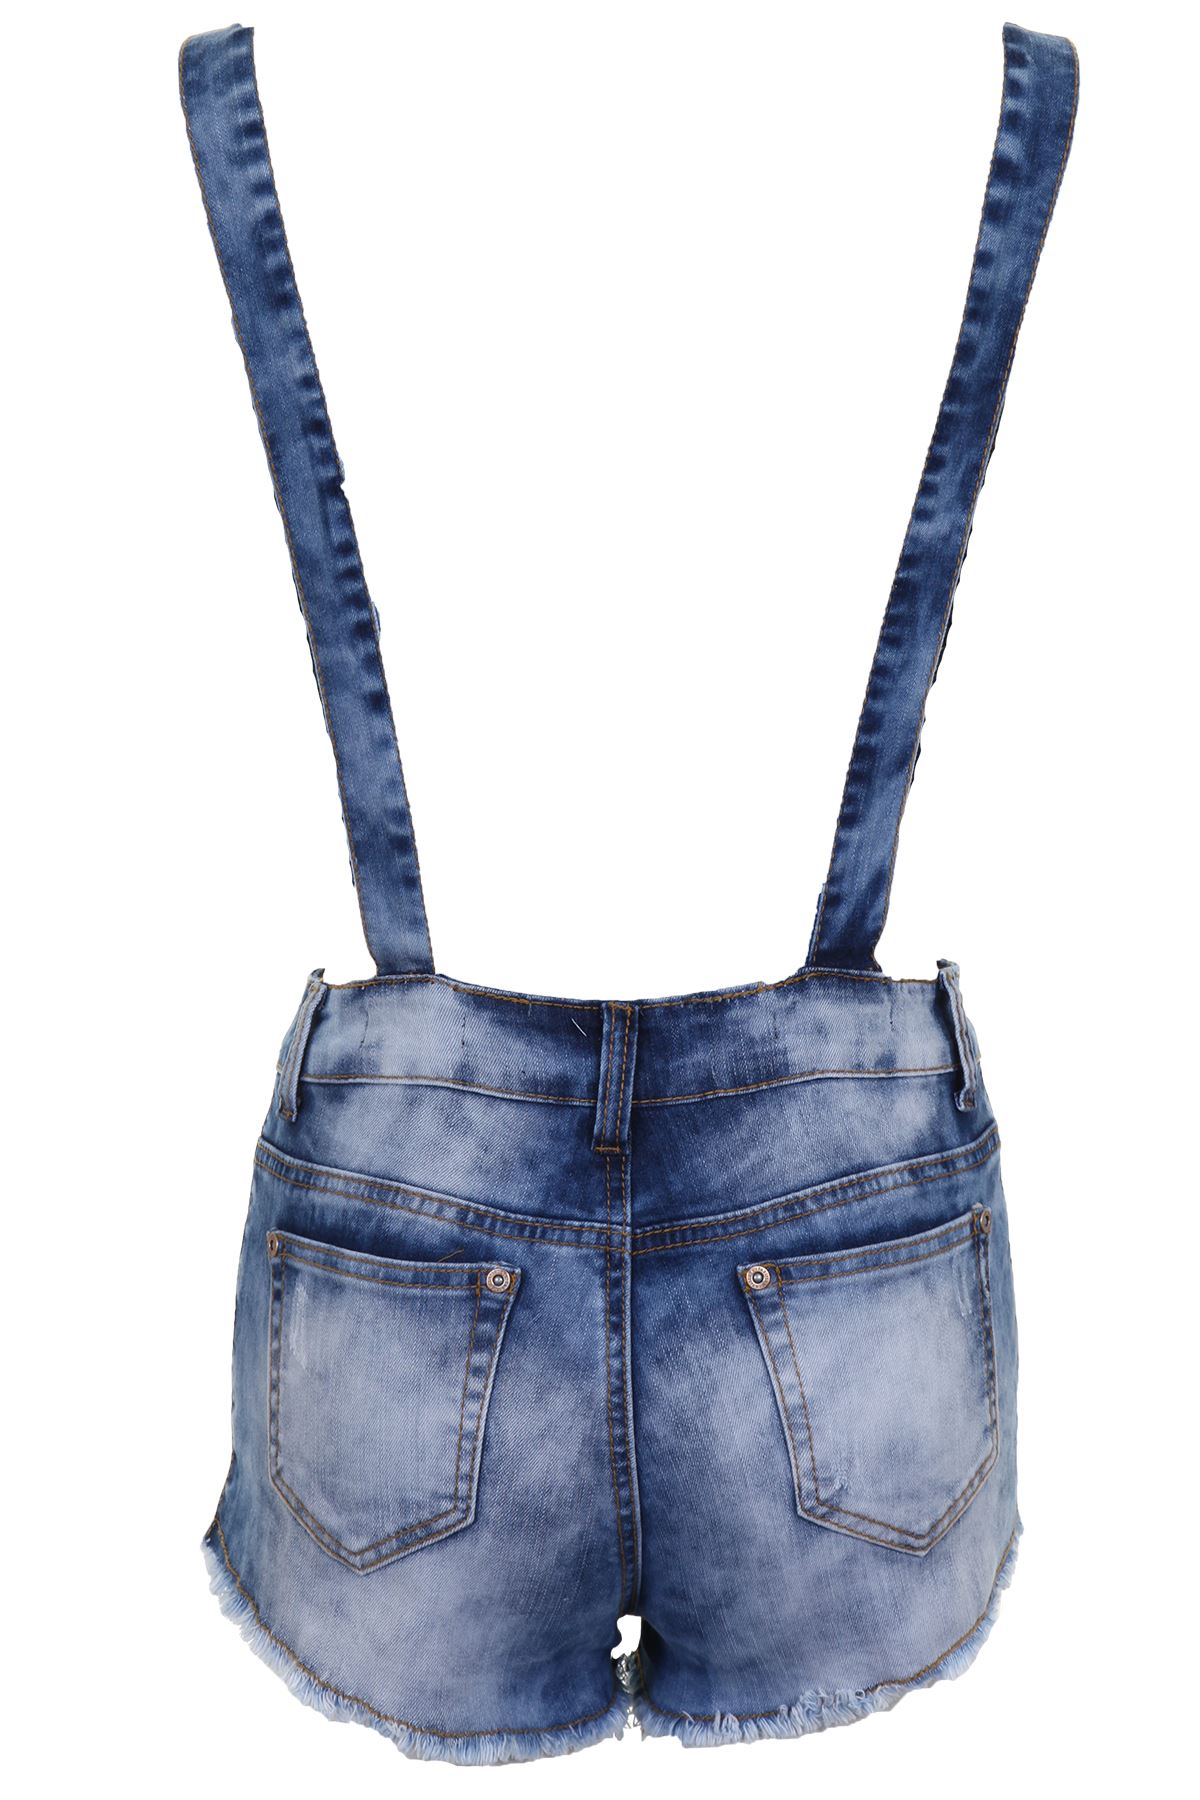 Ladies-Brace-Denim-Frayed-Distressed-Casual-Summer-Womens-Shorts-Dungarees